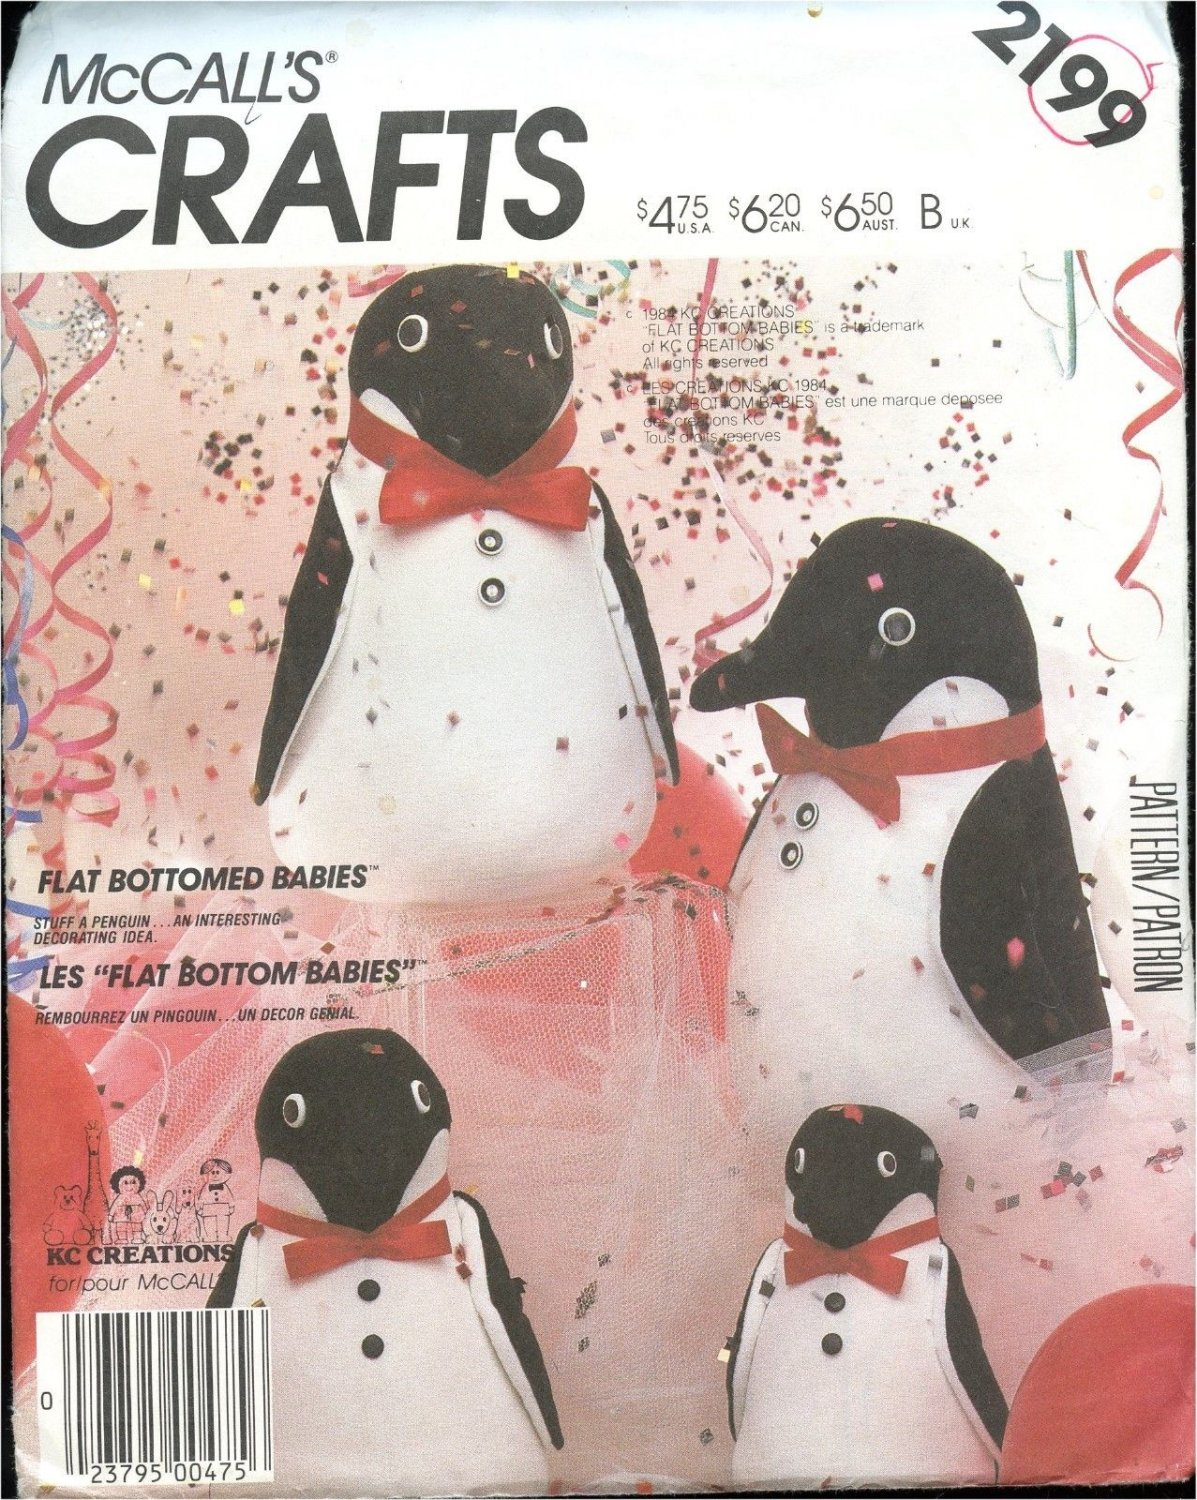 McCall's CRAFT Sewing Pattern #2199 FLAT BOTTOM Babies Penguins in 3 sizes Uncut